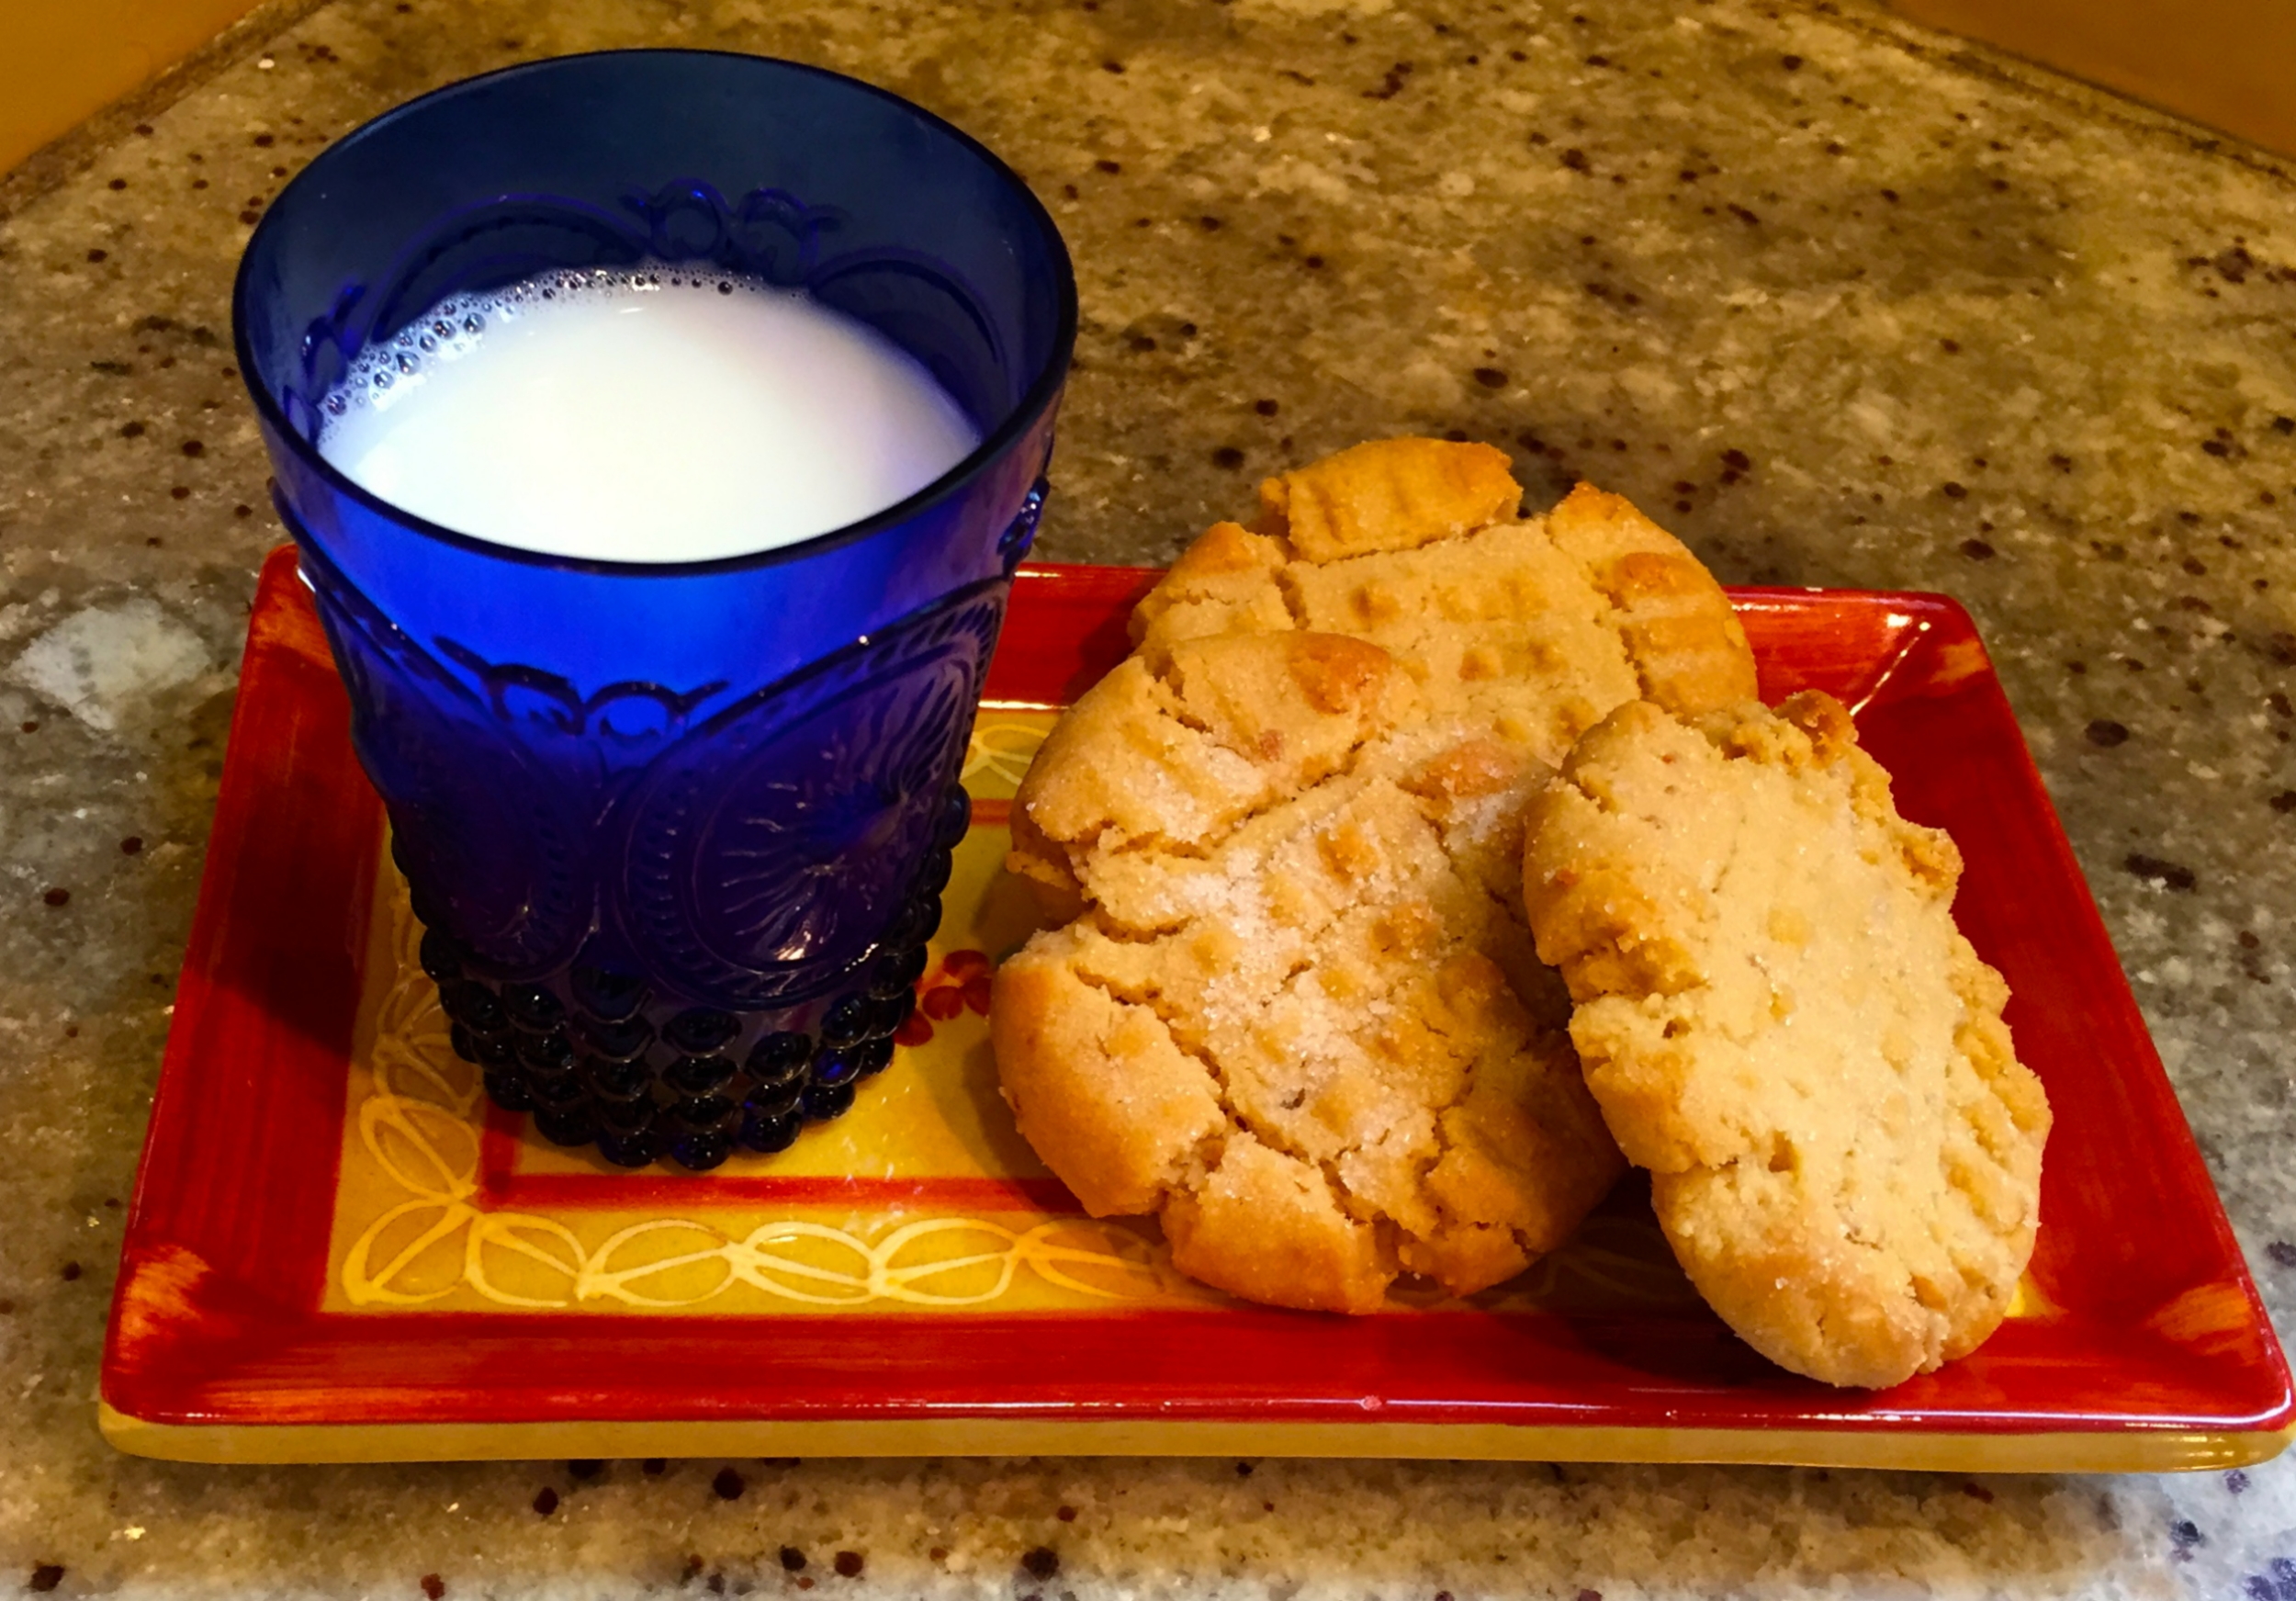 Cookies and Milk, another perfect pairing